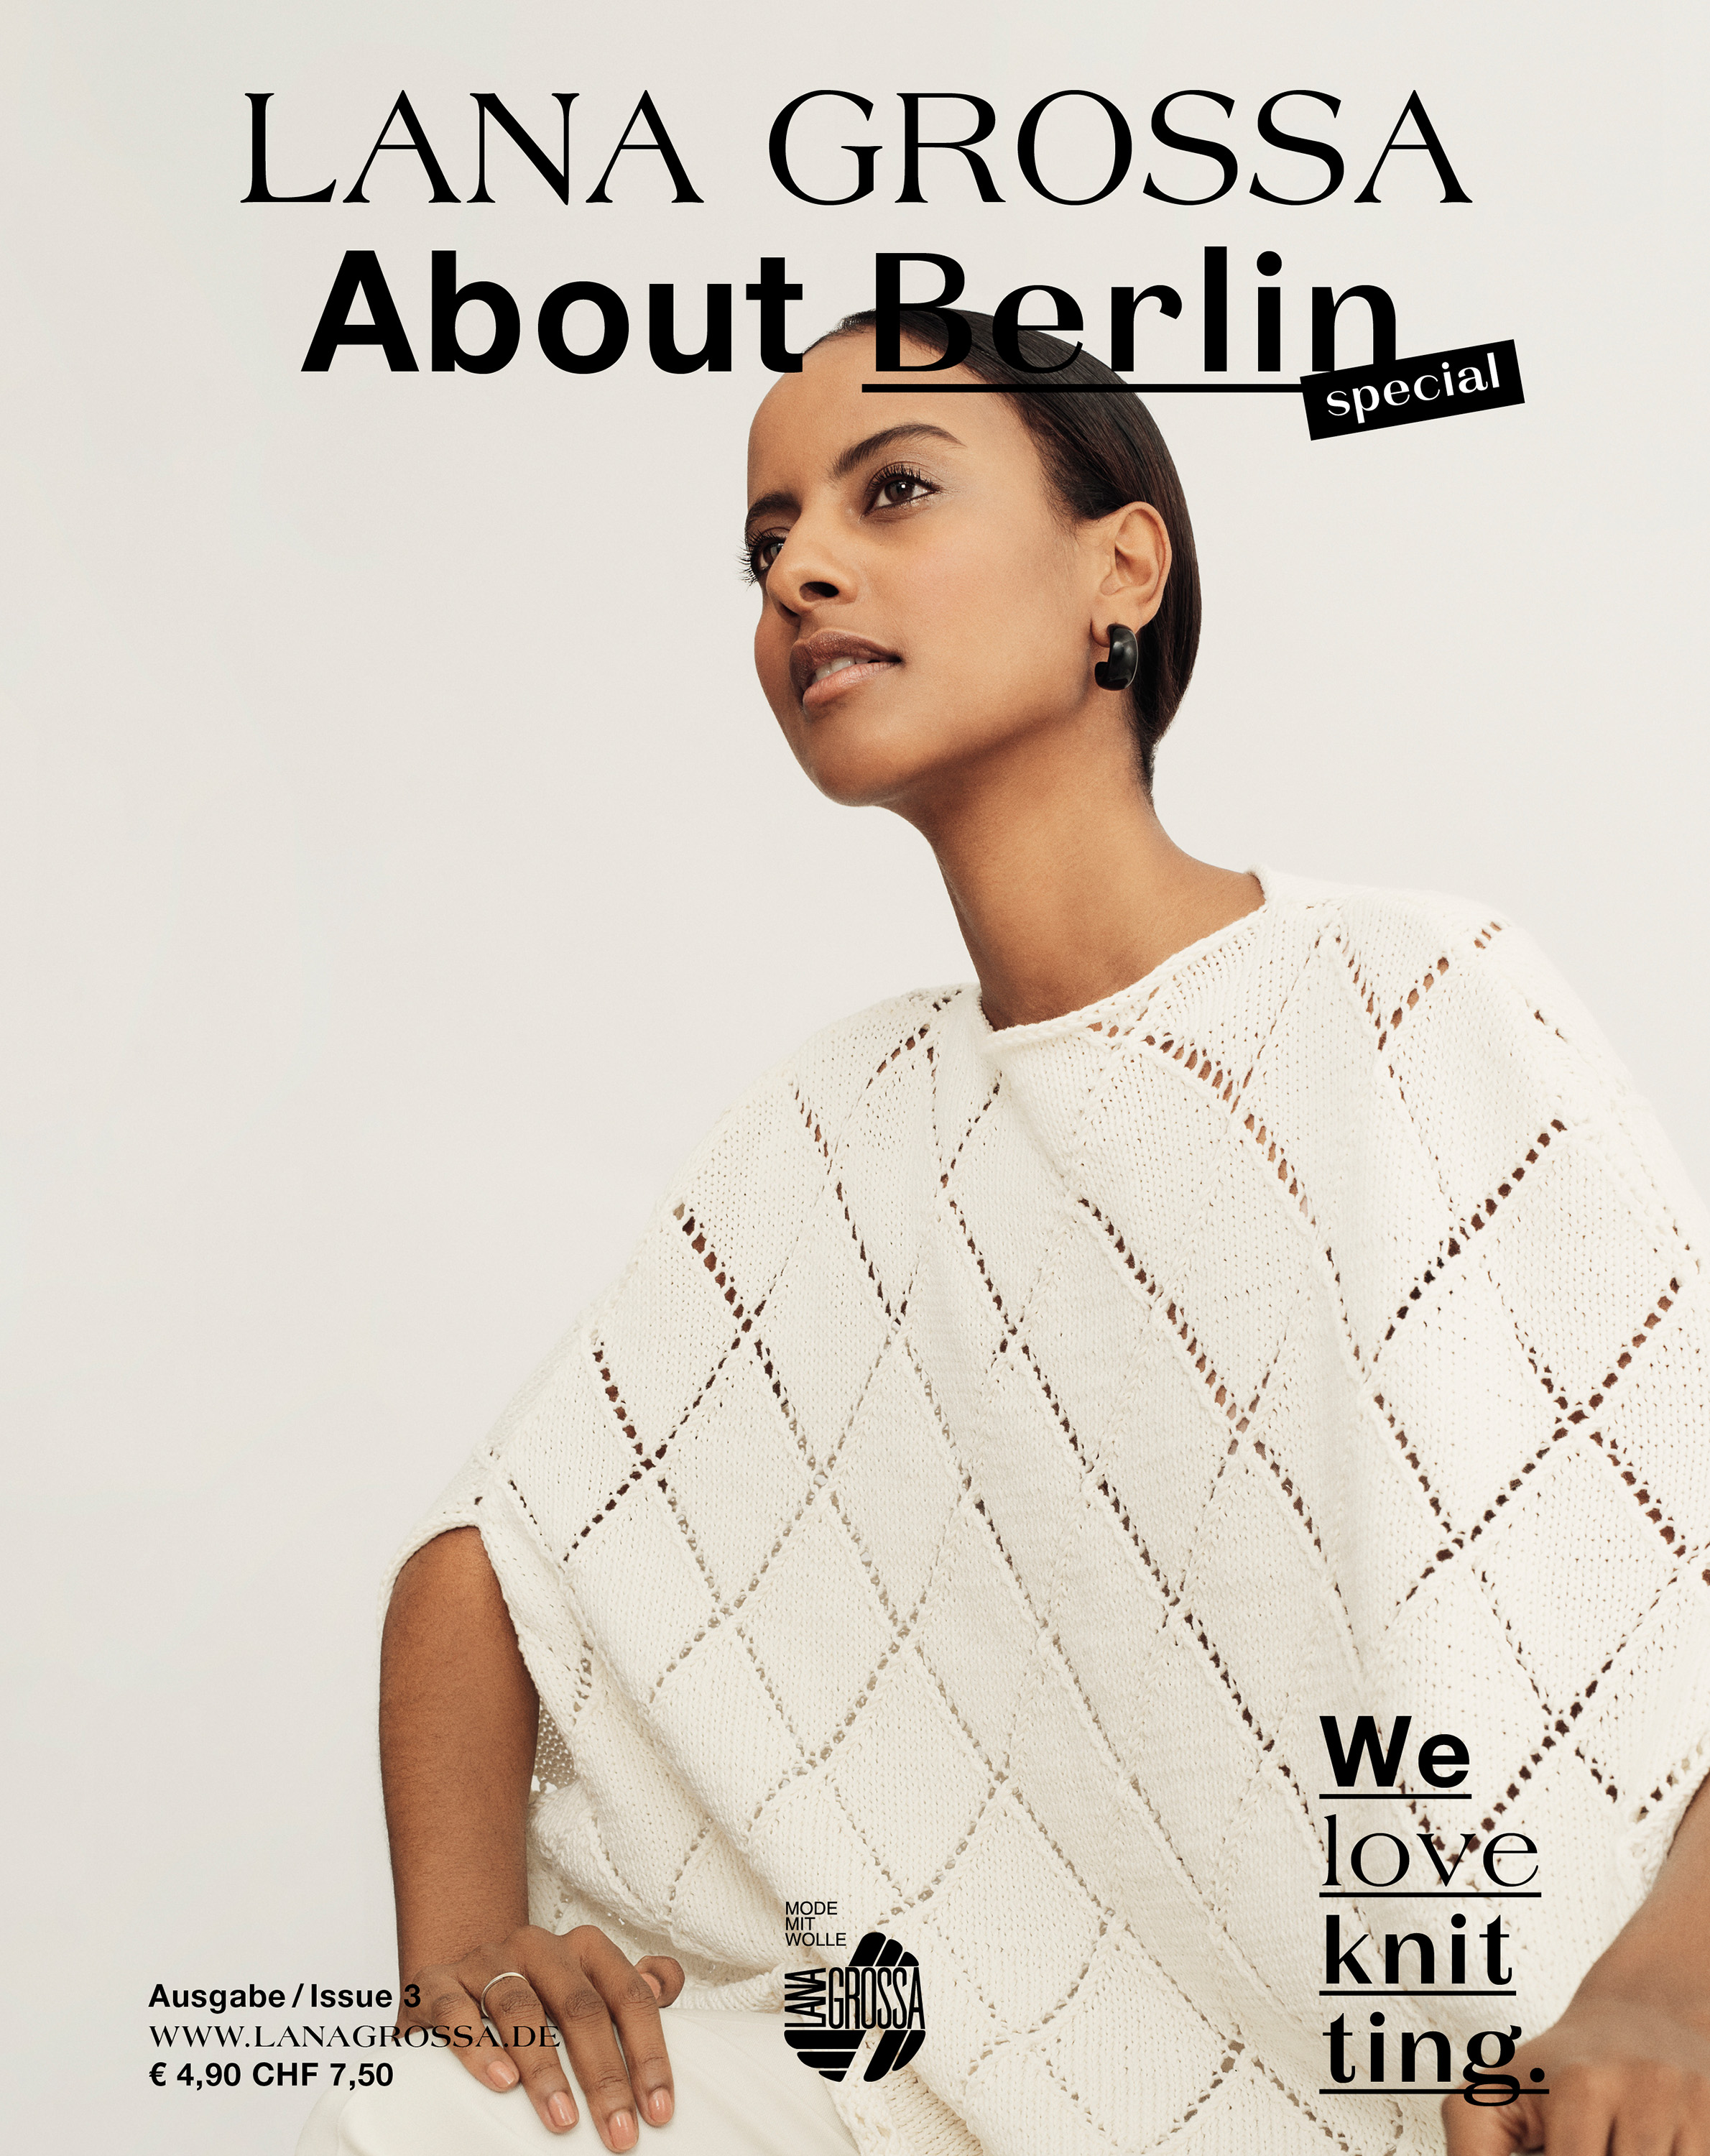 About Berlin Special No. 3